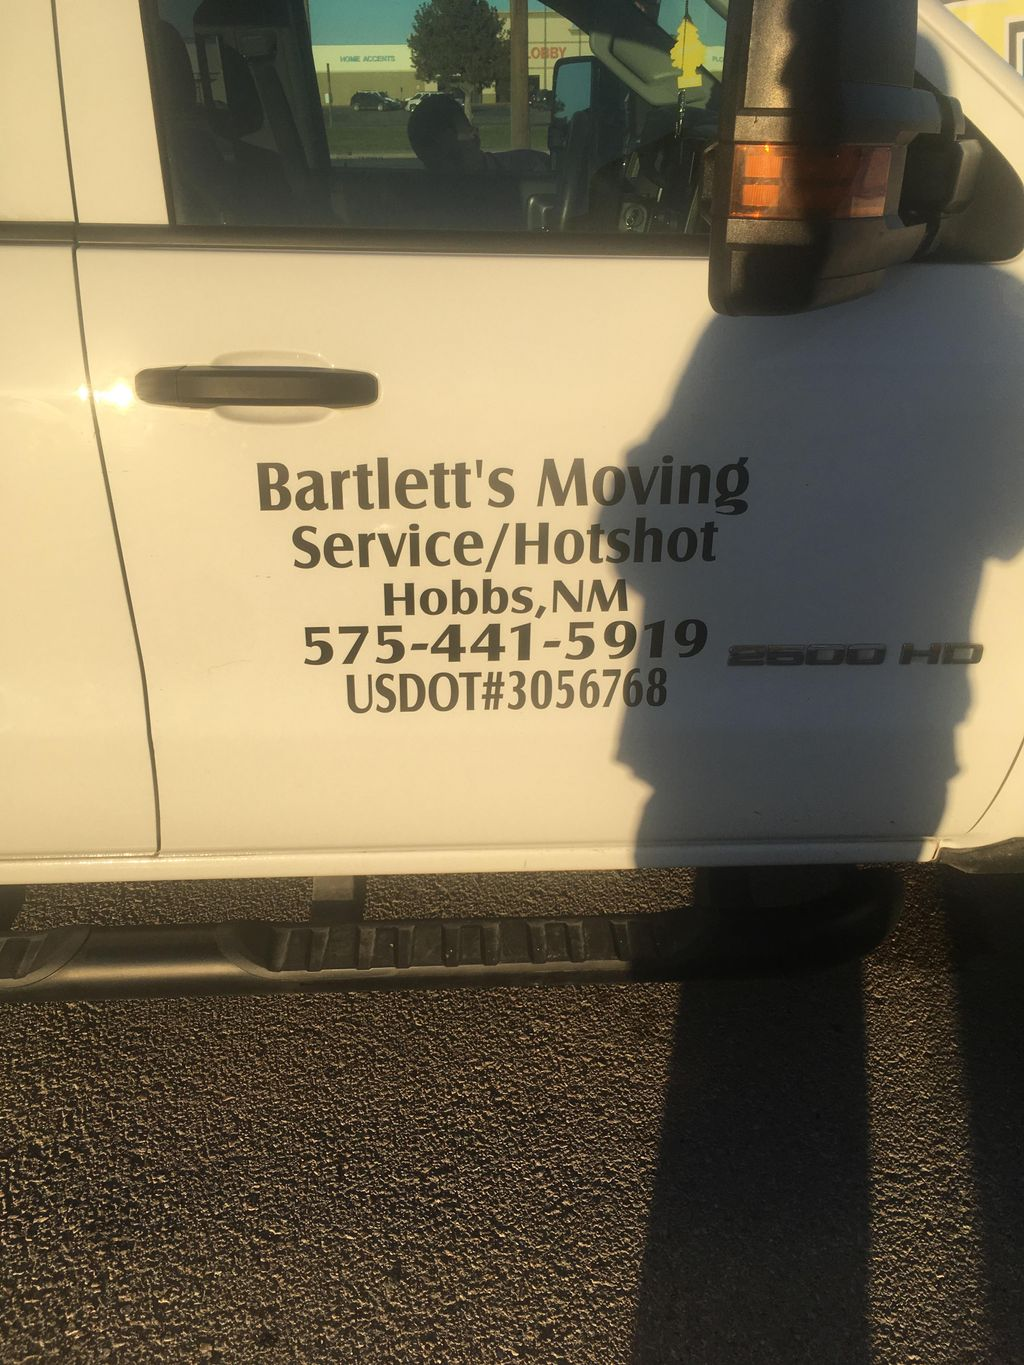 Bartlett's moving service